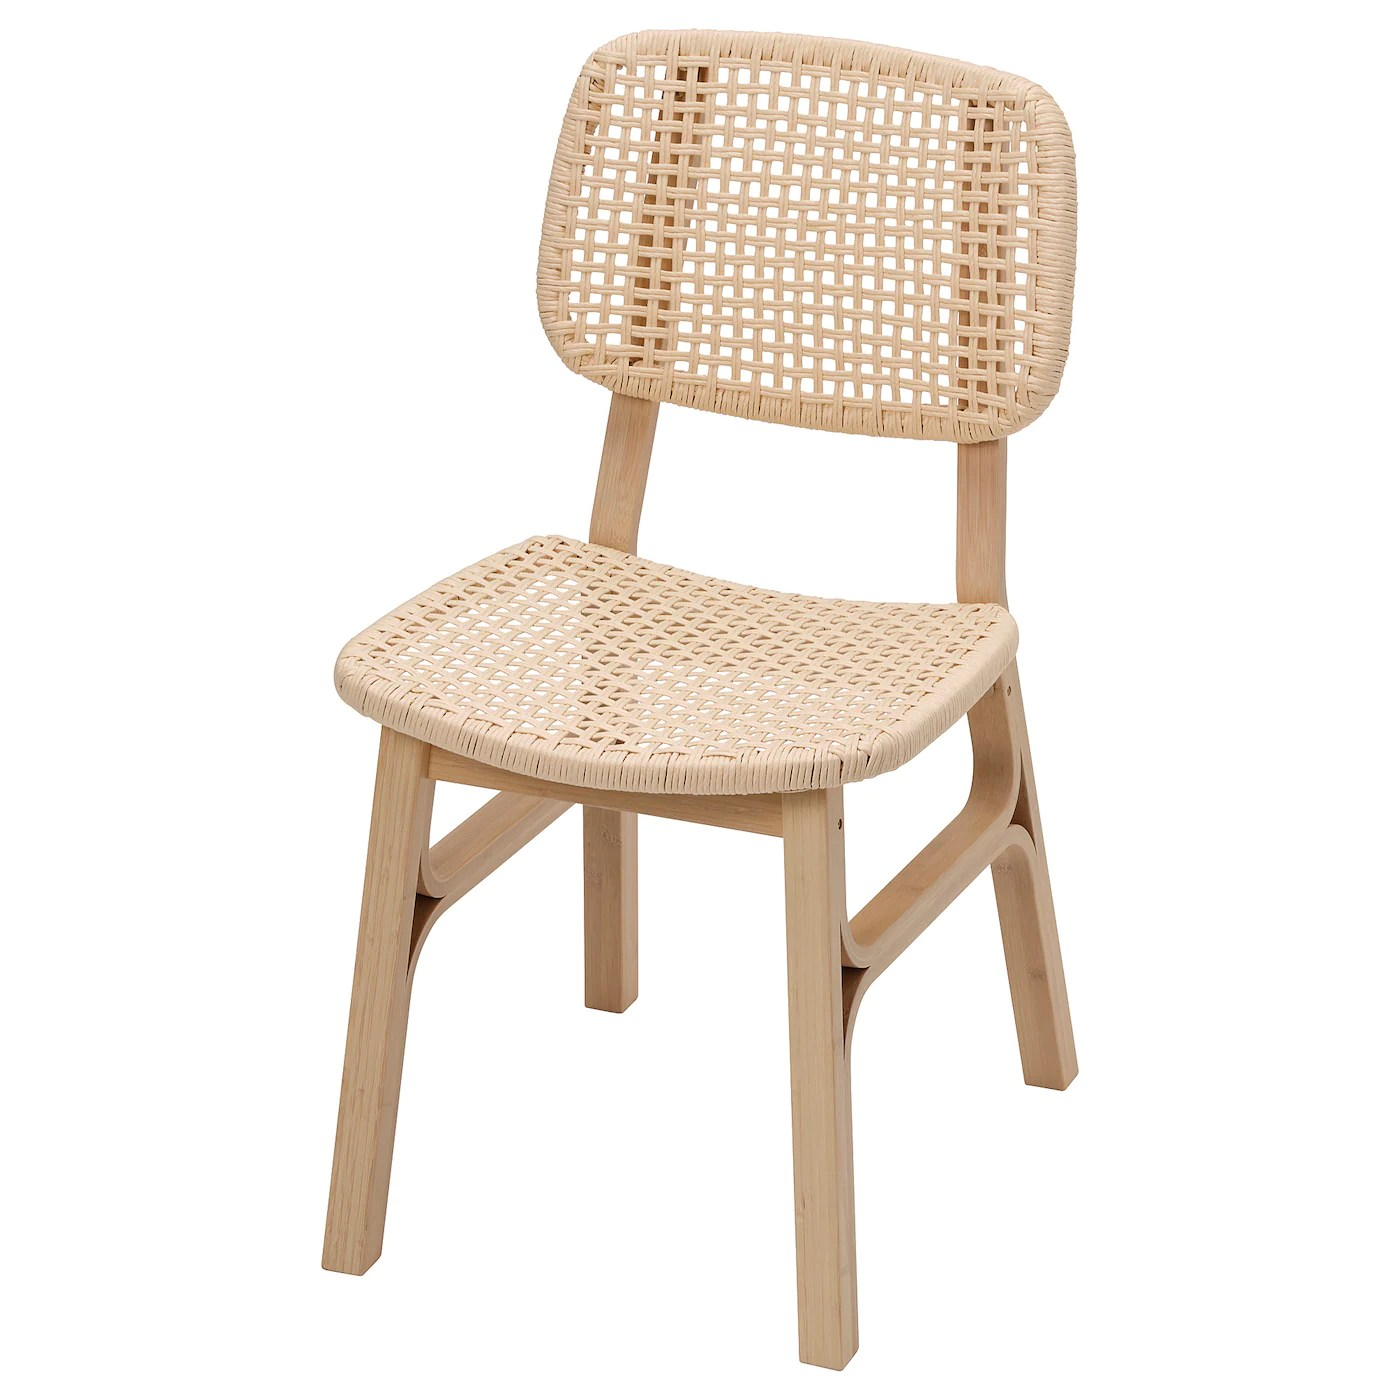 ikea sells chairs i wanted but they were more than i wanted to spend. Sedie Sala Da Pranzo Ikea It